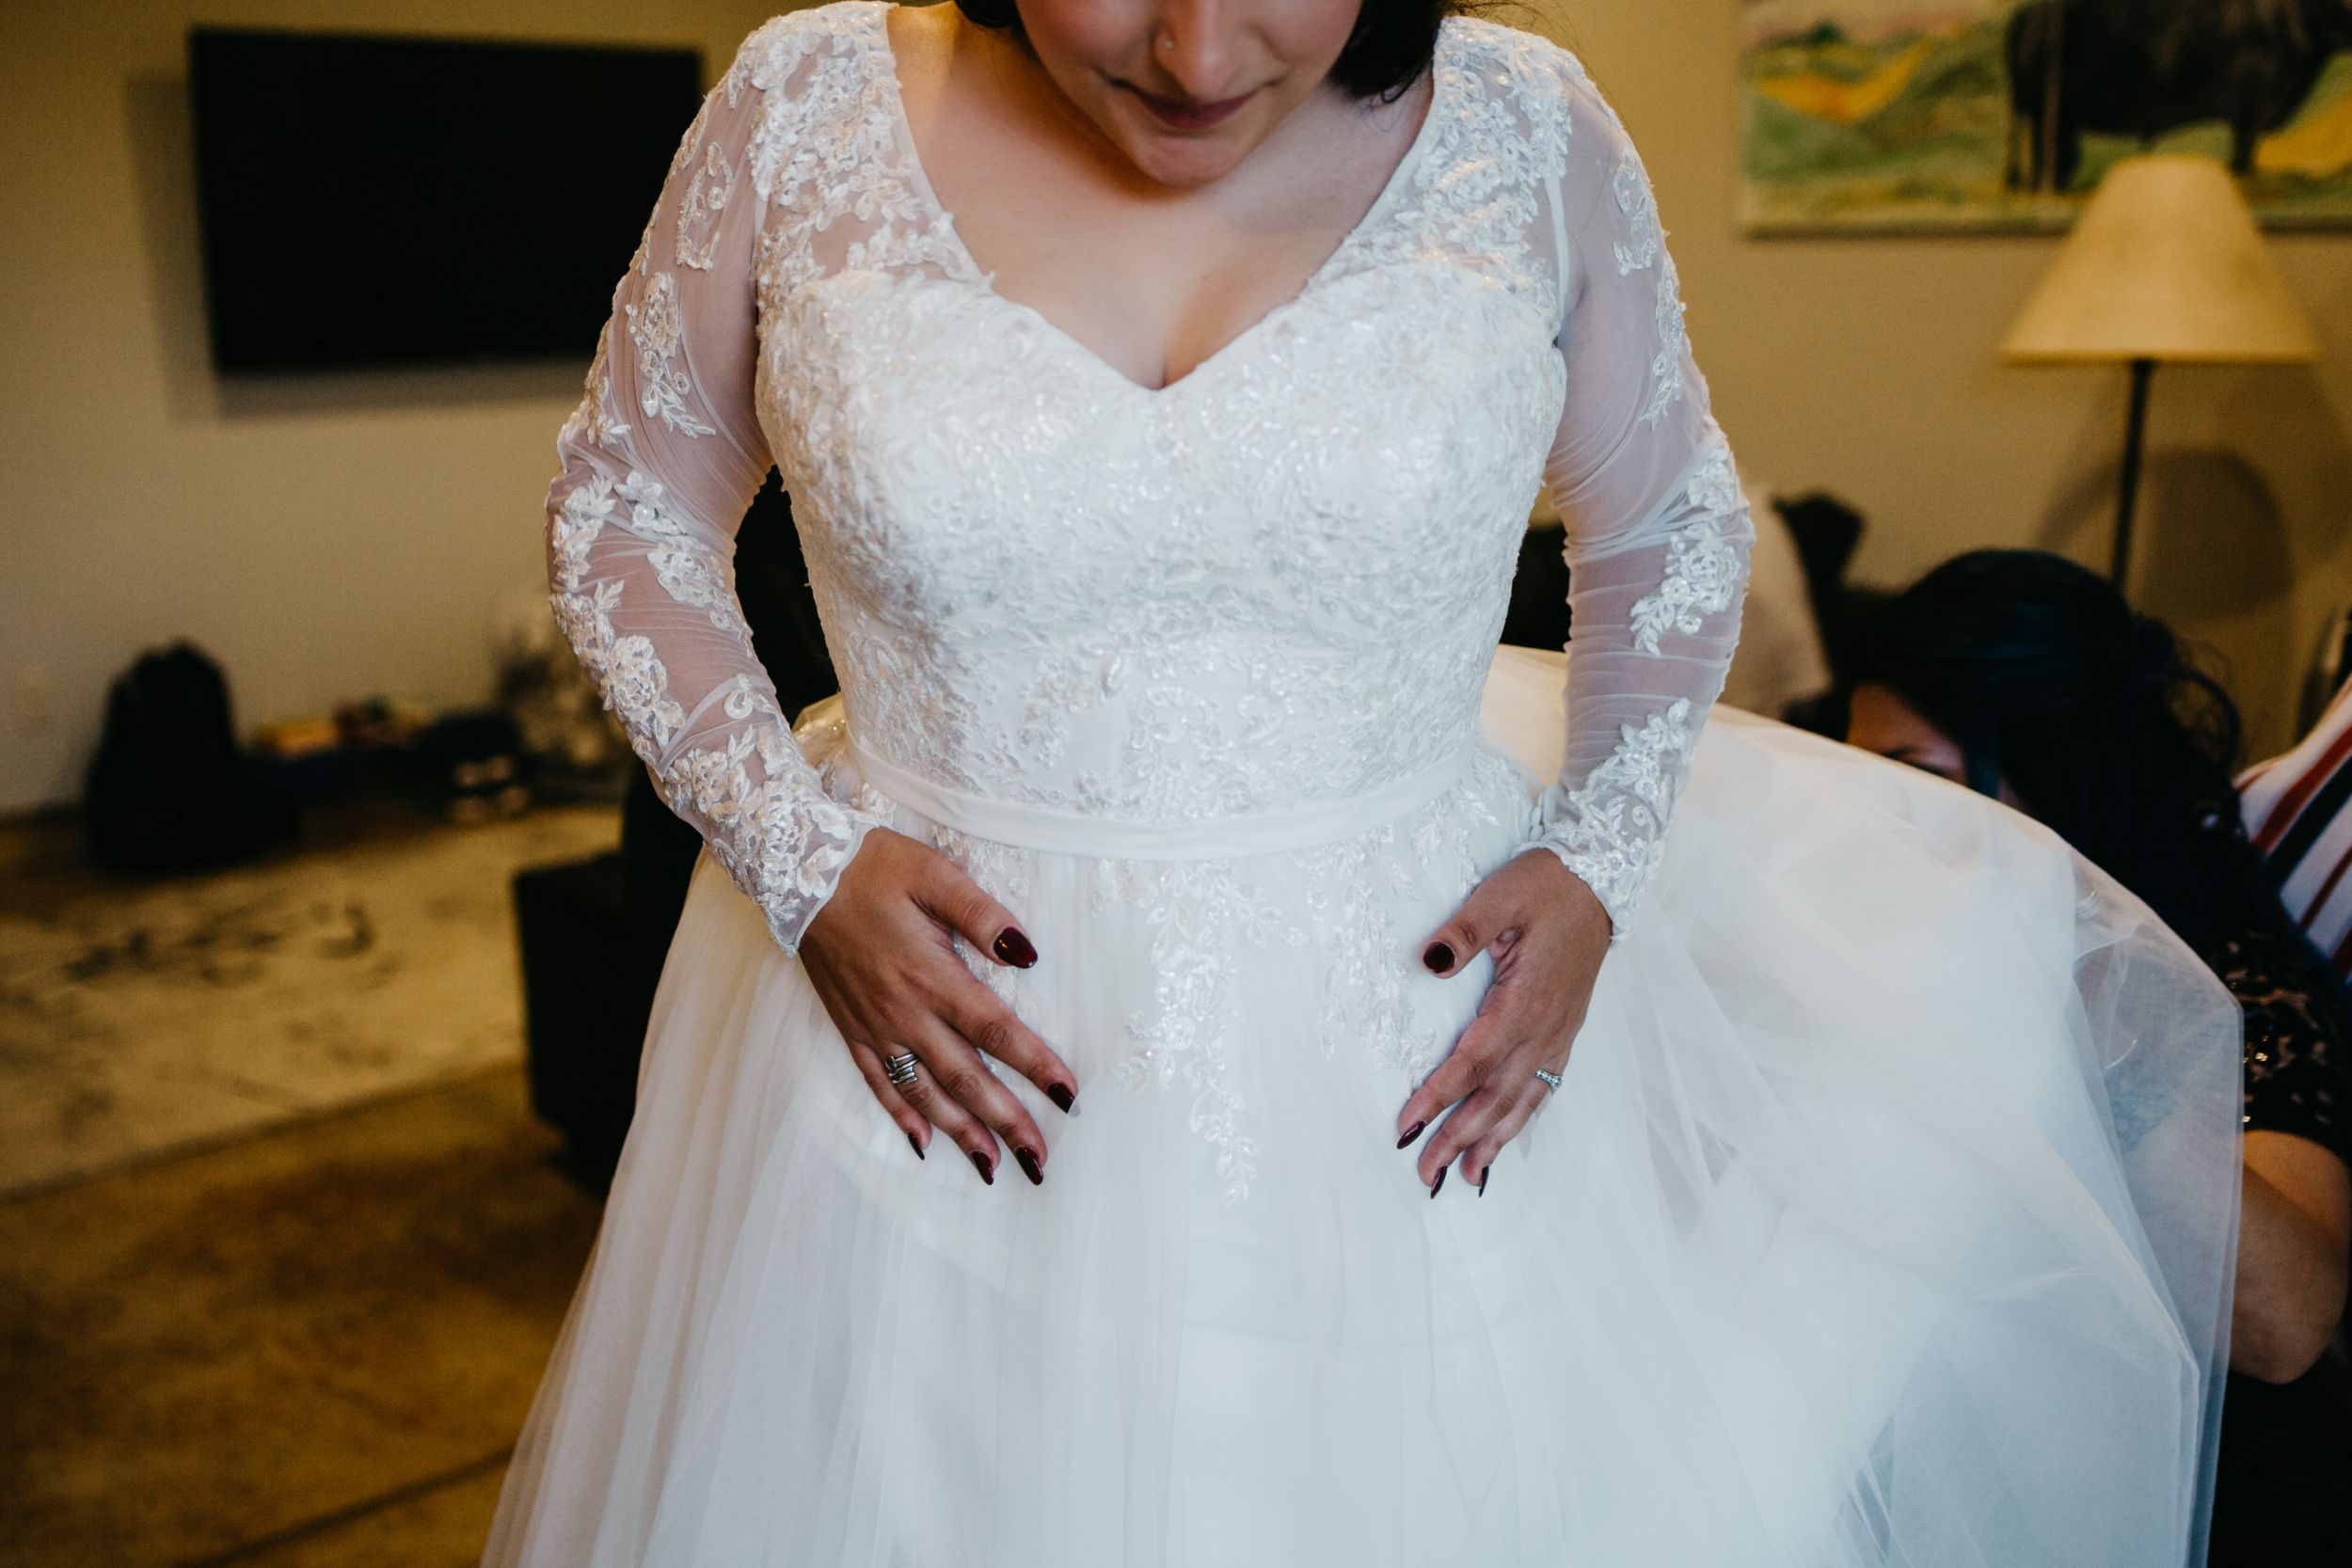 Lace Wedding Dress Up Close Colorado